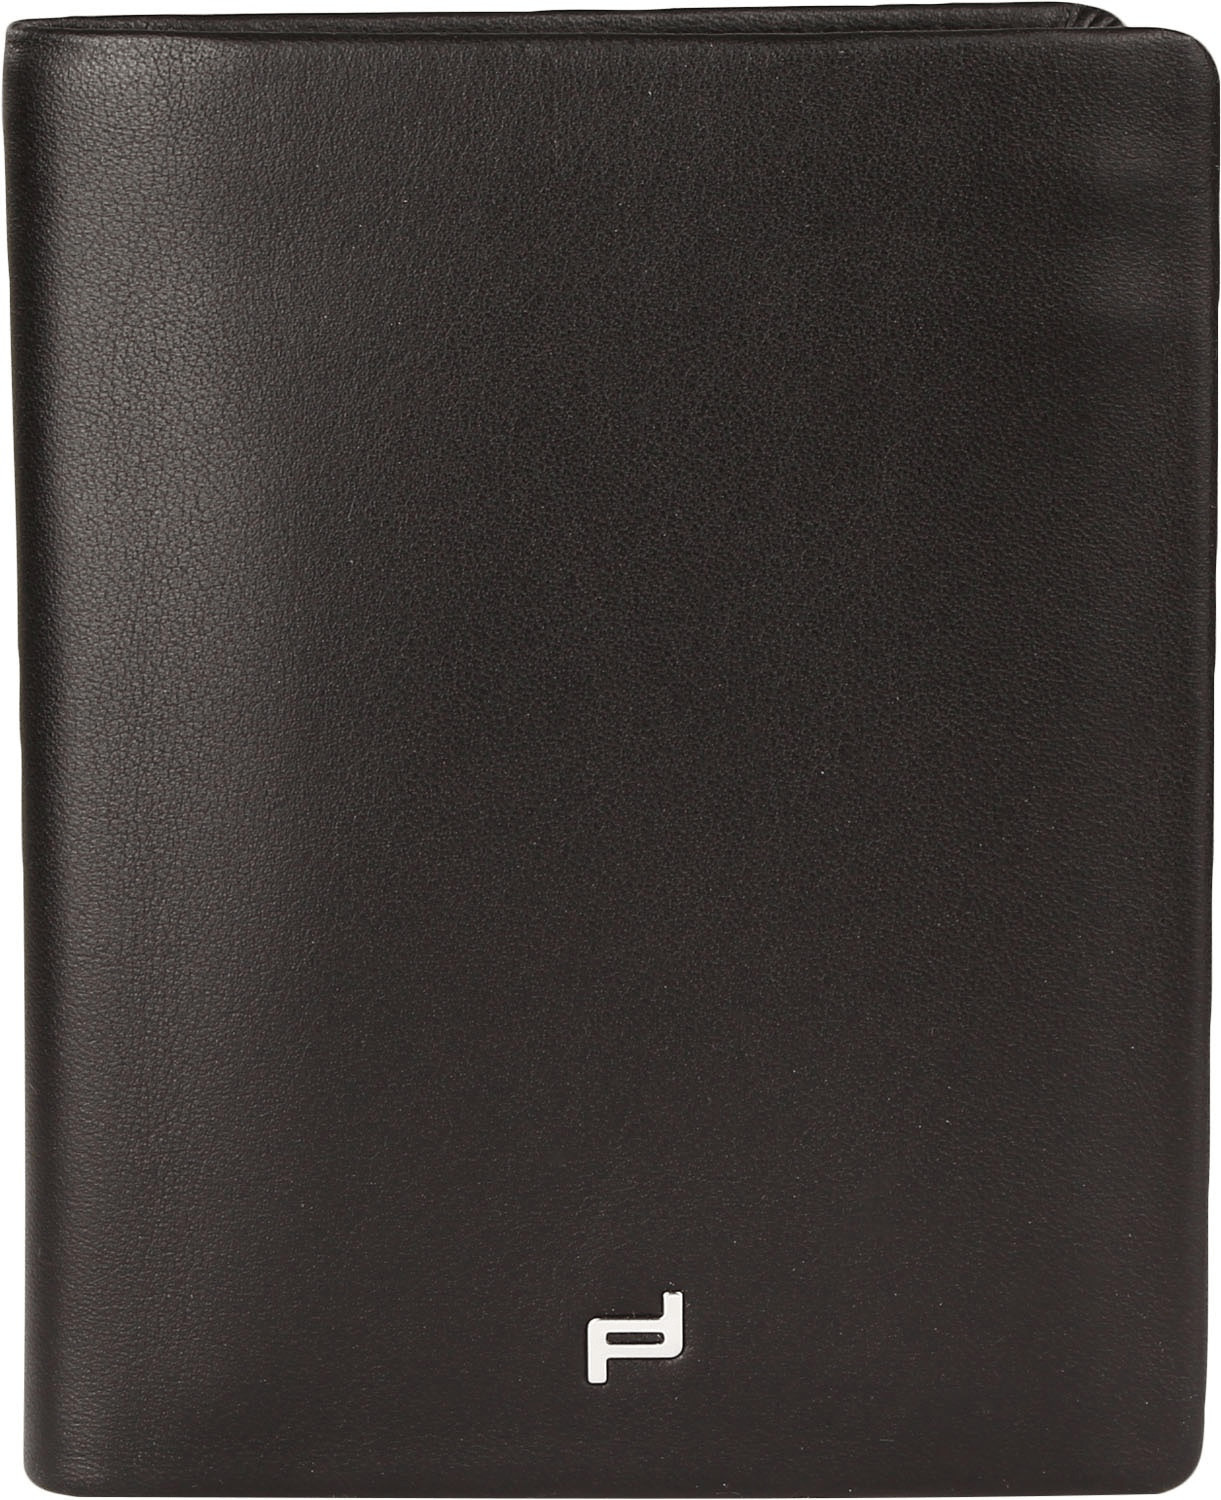 Porsche Design Touch black (4090002435)